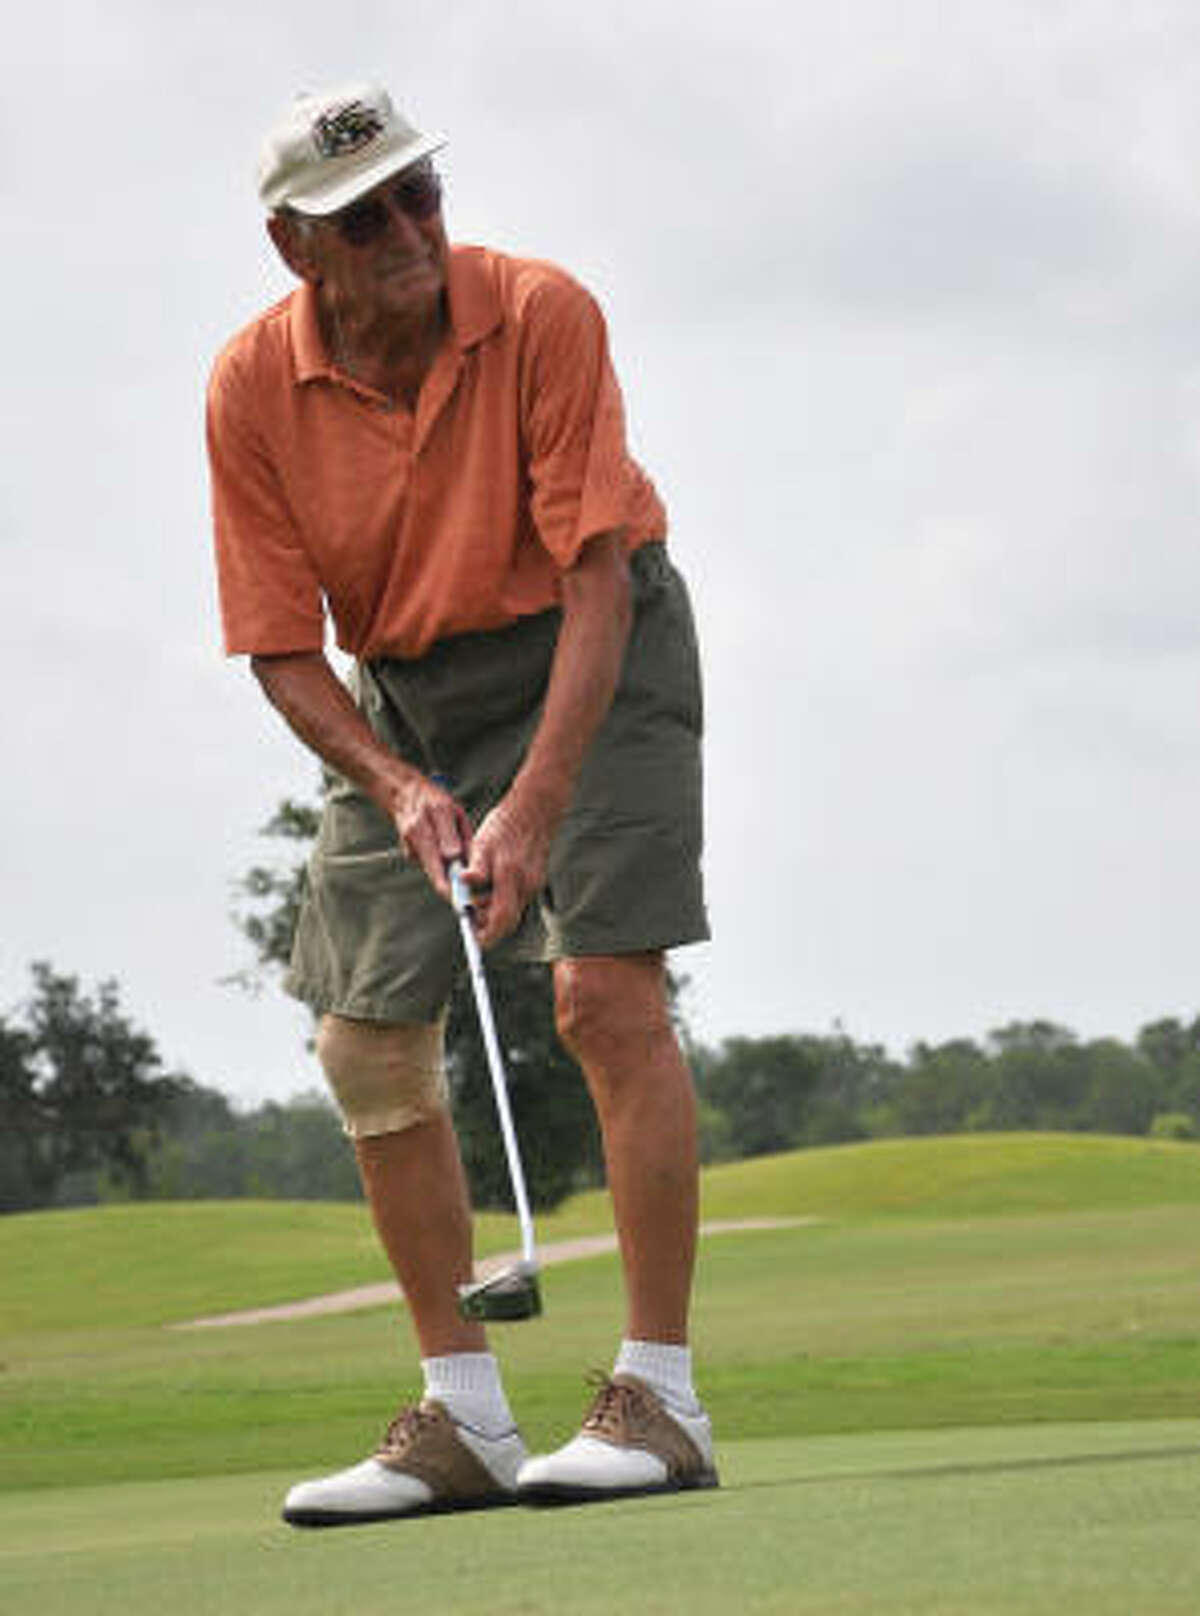 Bill Goynes, 87, tries to sink a putt at the Clear Creek Golf Course near Pearland.